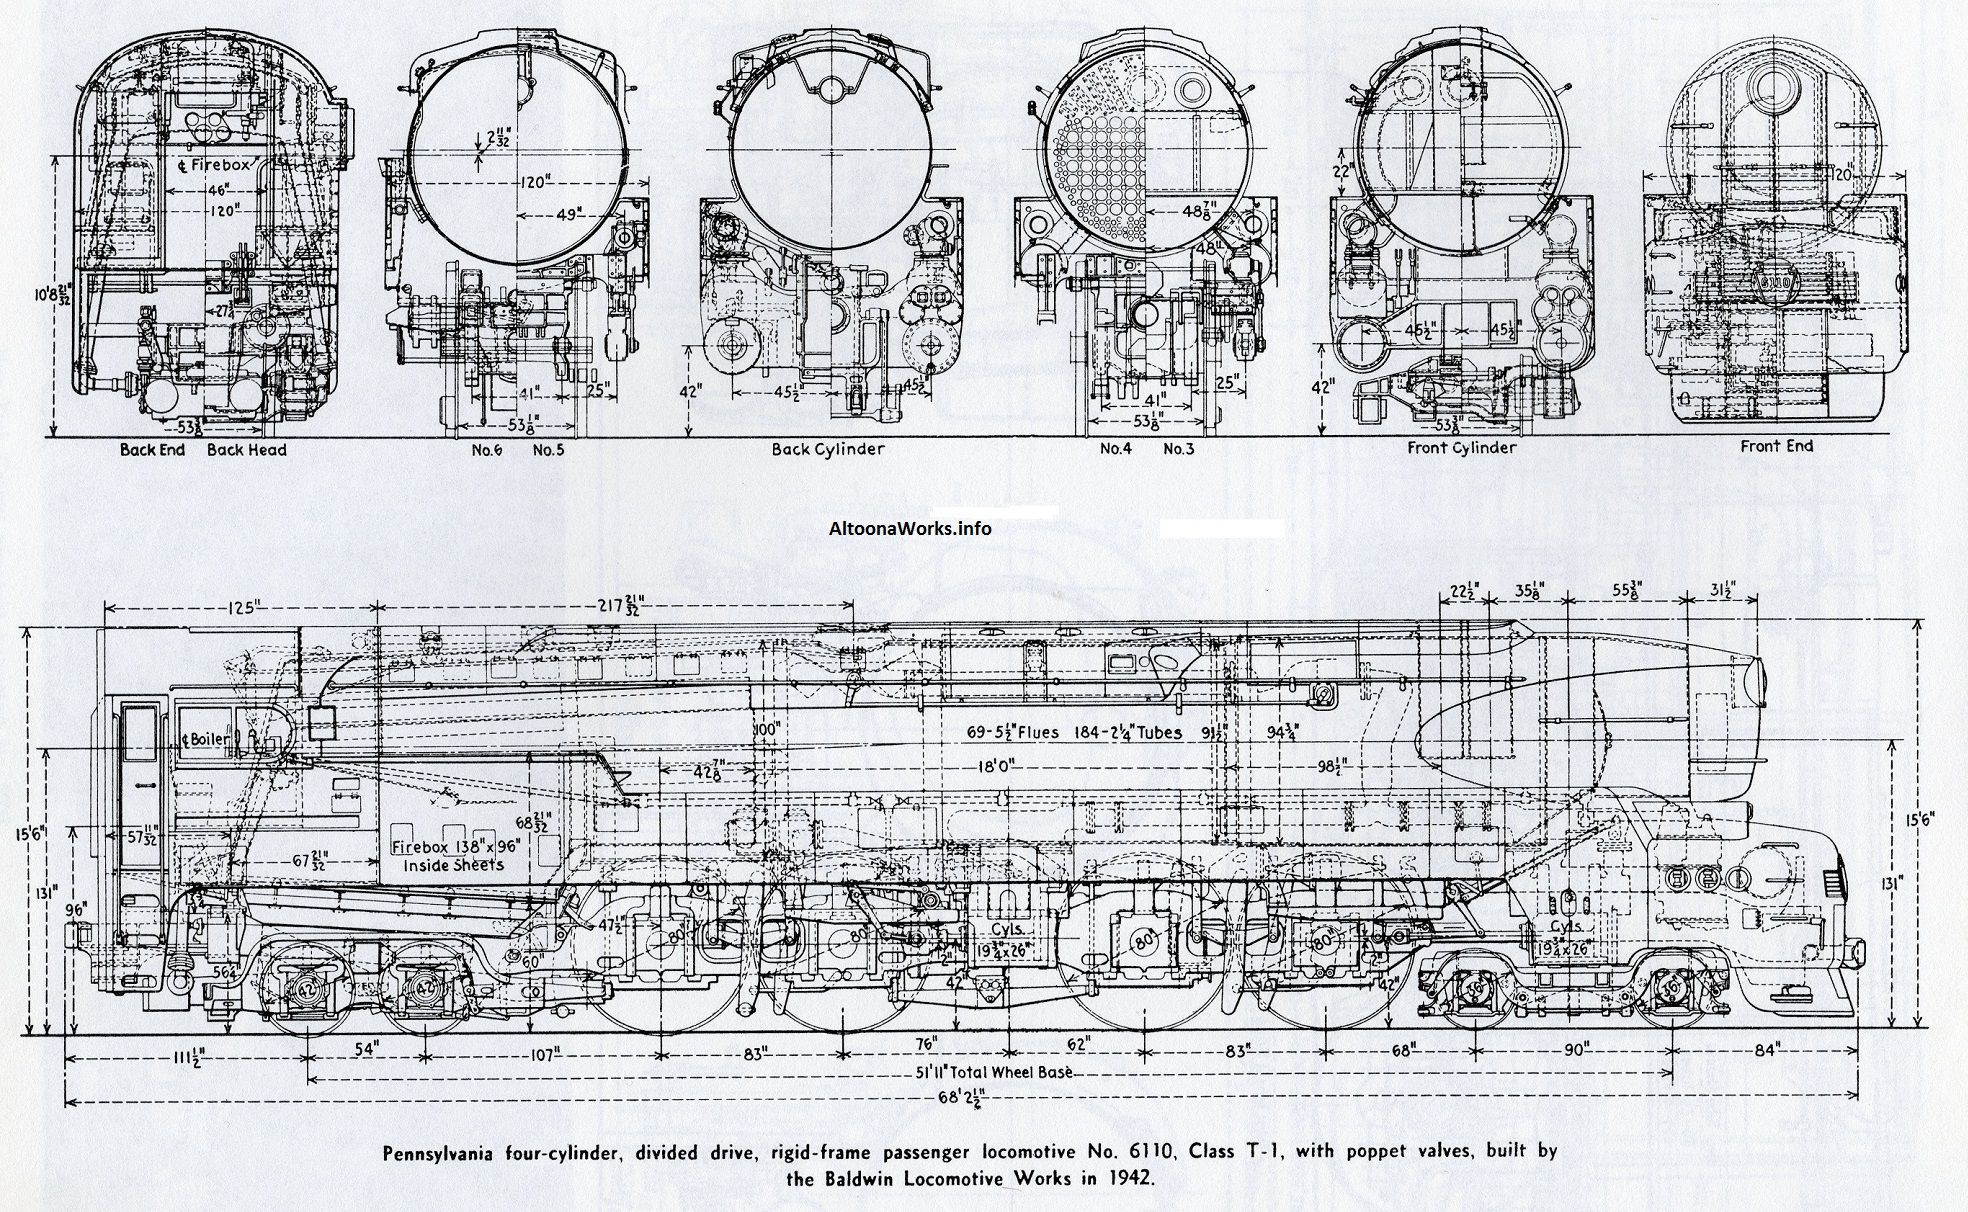 pennsylvania t 1 4 4 4 4 baldwin 1942 locomotive cutaways prr barge diagram [ 1968 x 1212 Pixel ]